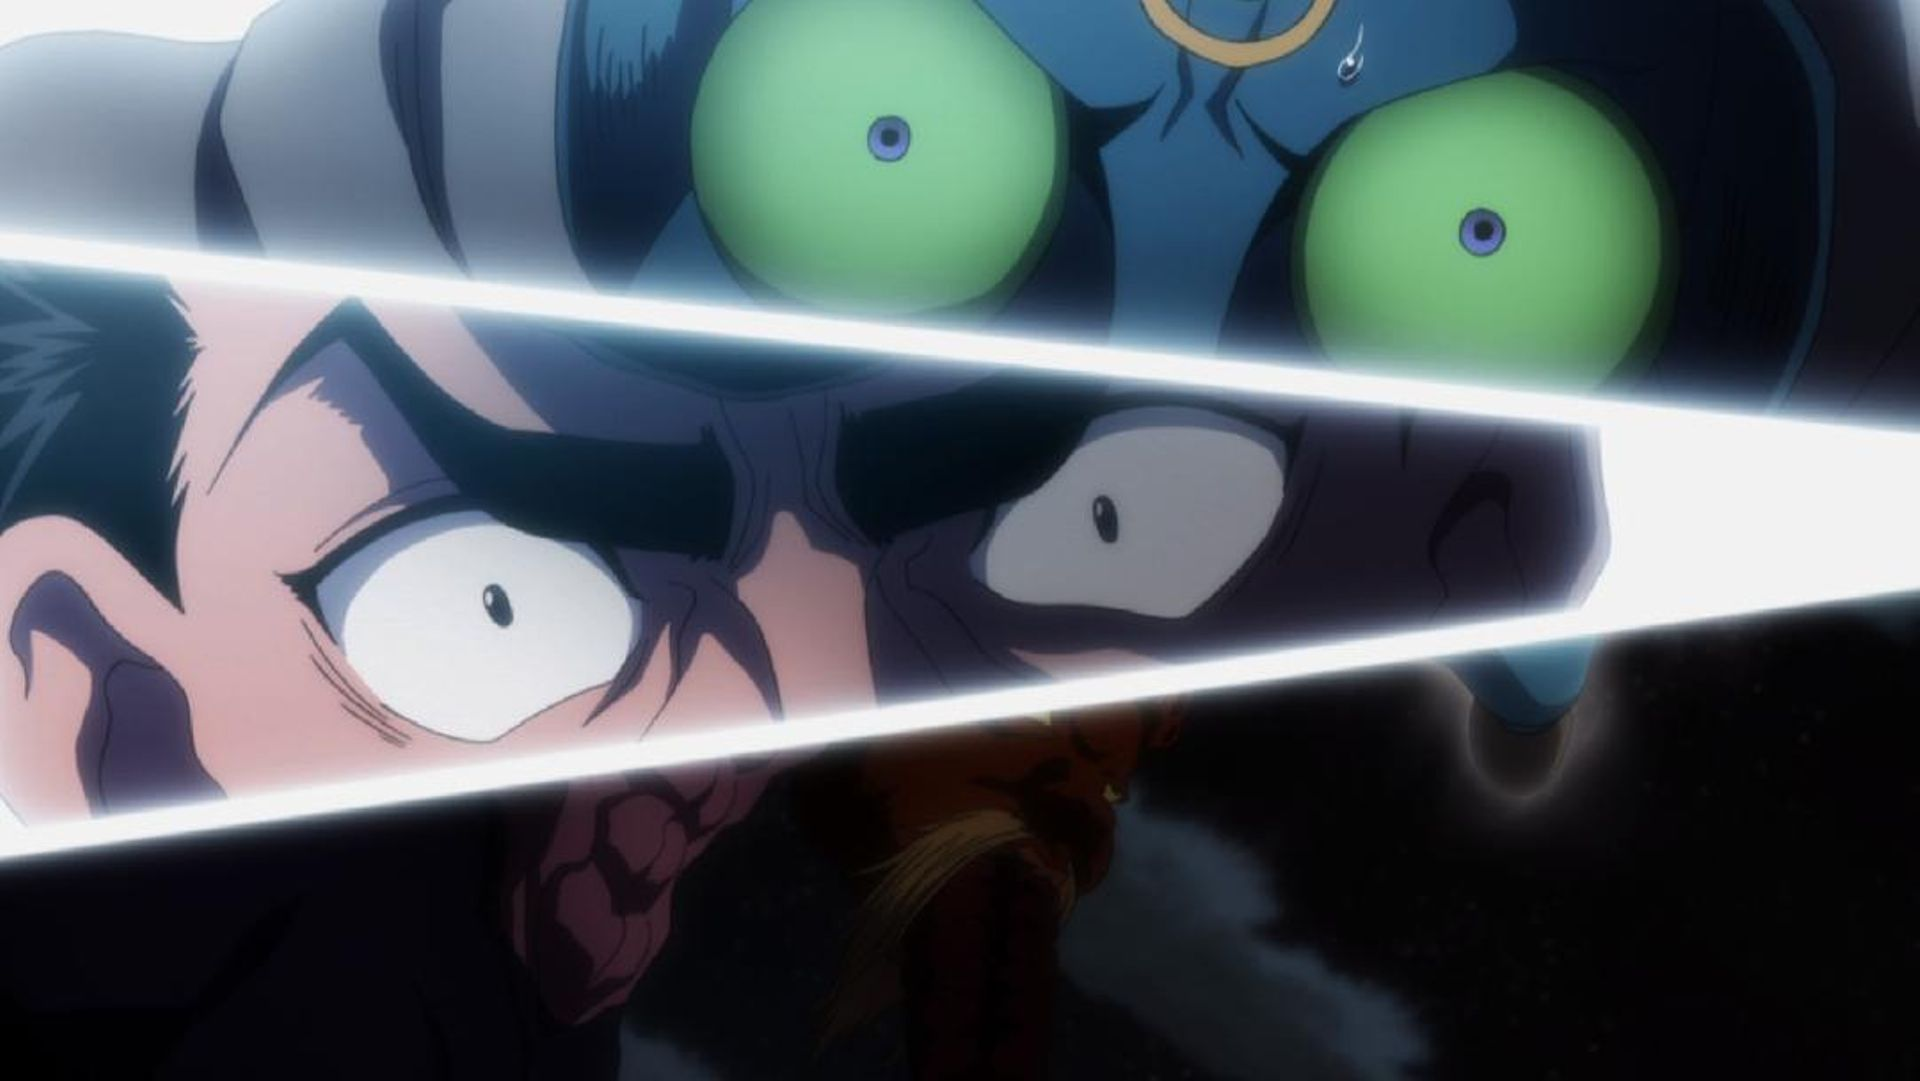 Hunter x Hunter - This Person x and x This Moment - Adult Swim